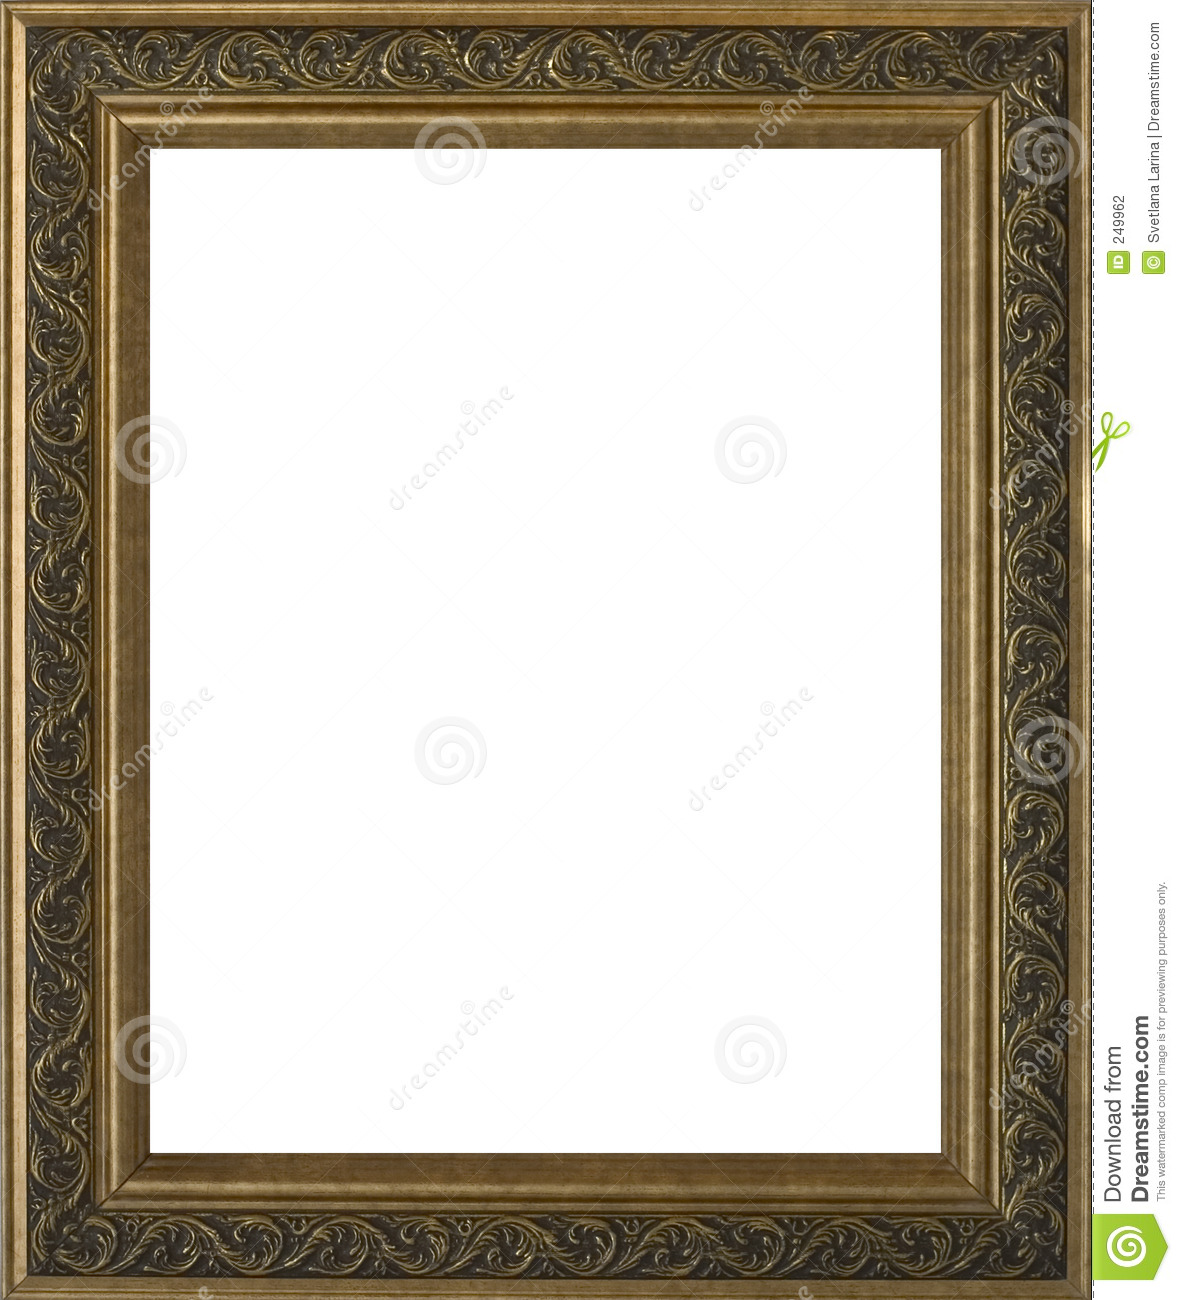 empty golden ornate frame